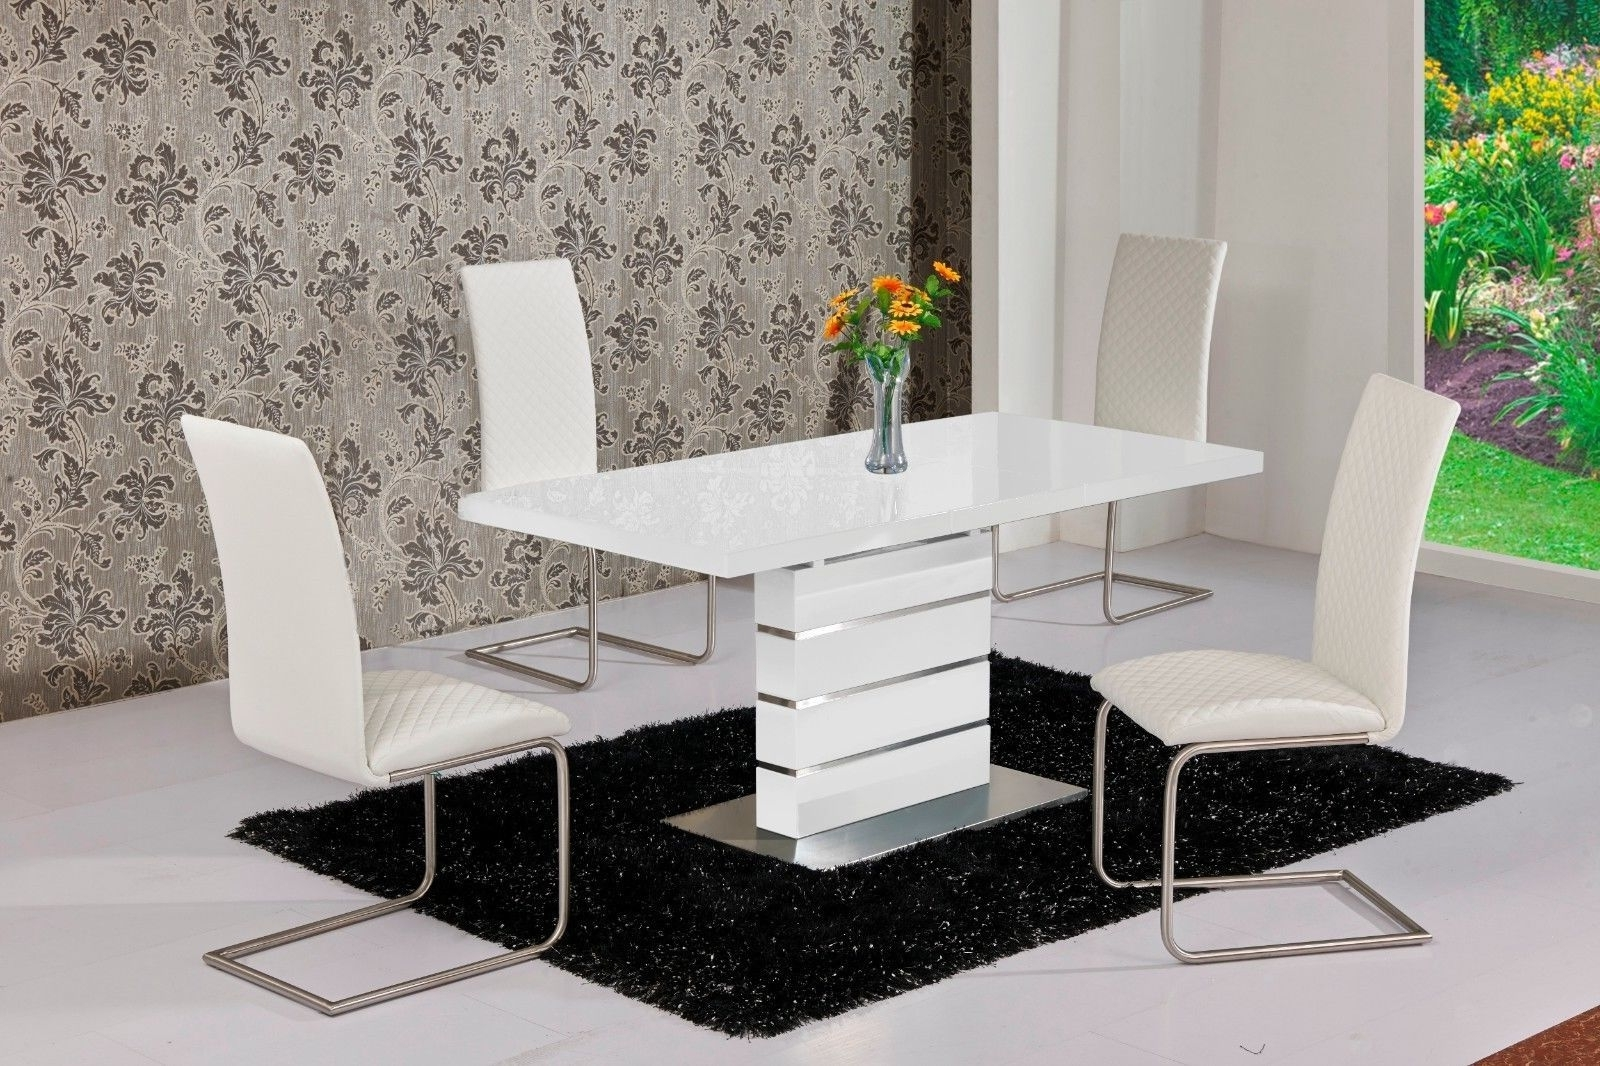 Mace High Gloss Extending 120 160 Dining Table & Chair Set – White For Newest Black Gloss Dining Tables And Chairs (Gallery 4 of 25)